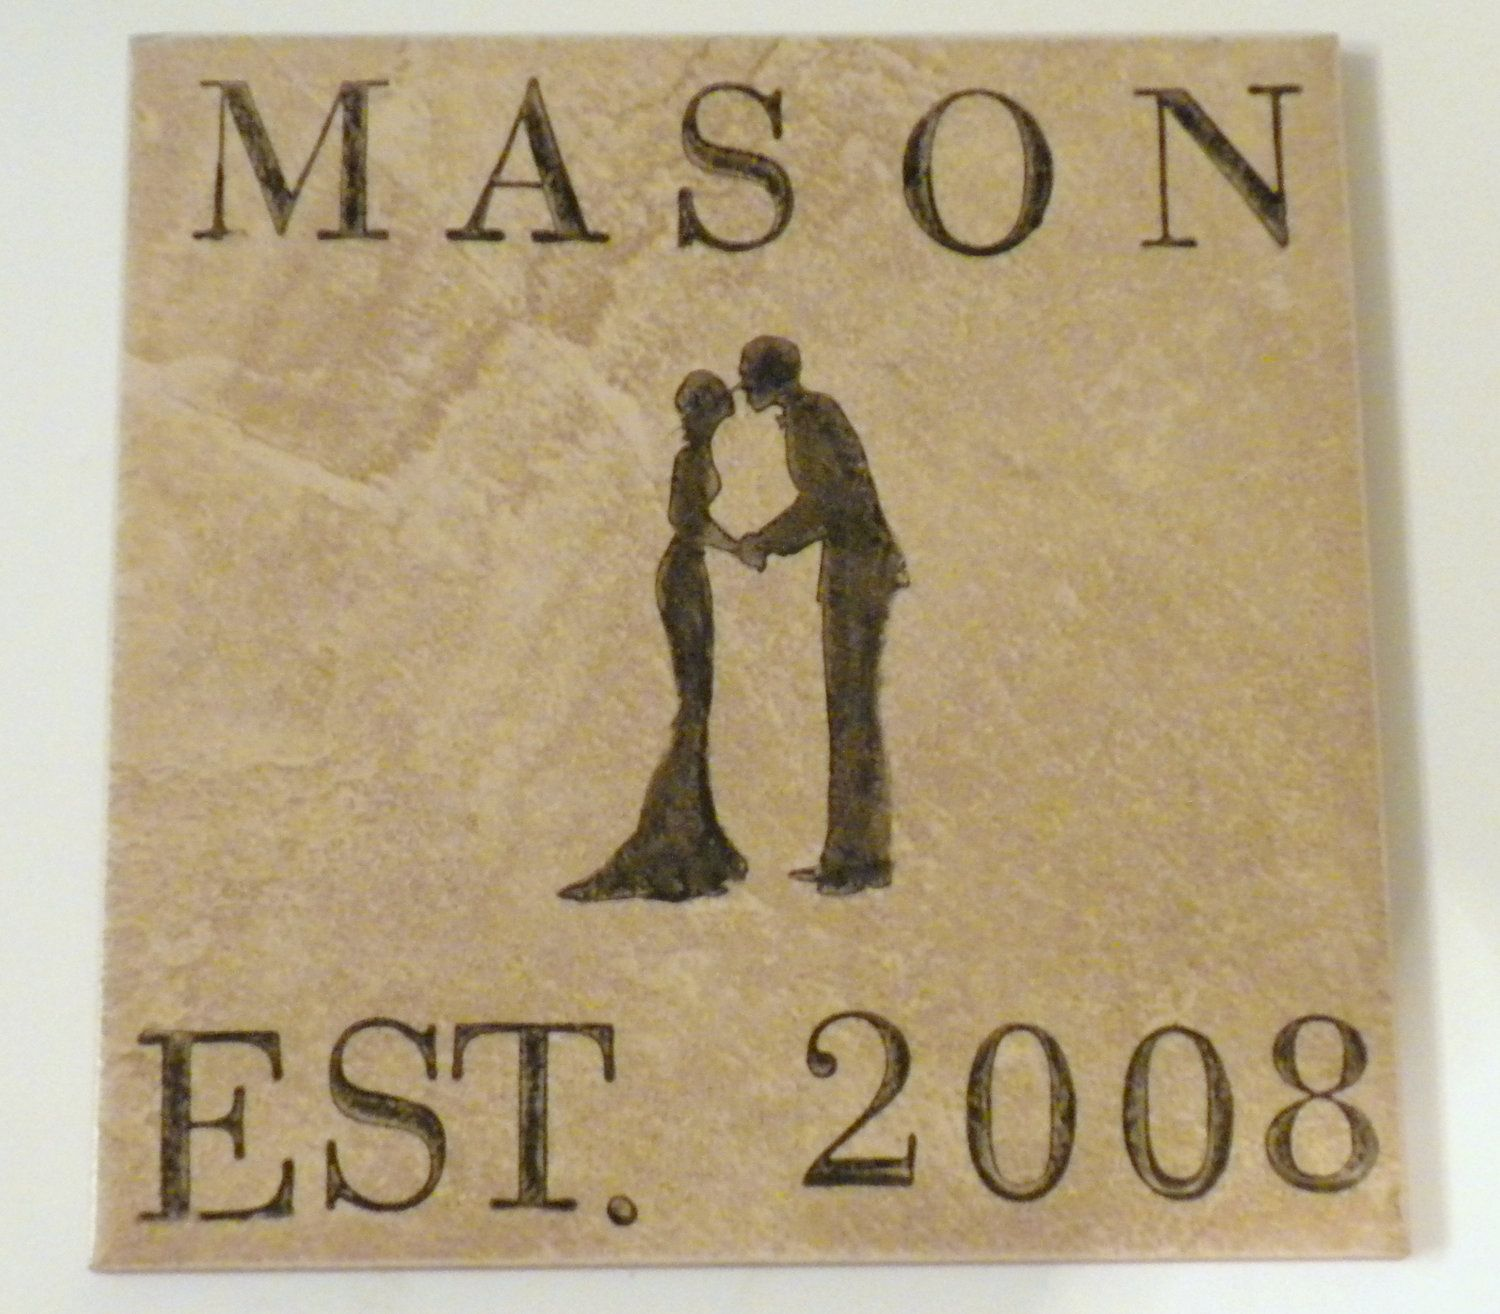 Personalized Just Married Trivet by BarleyGirlDesigns on Etsy